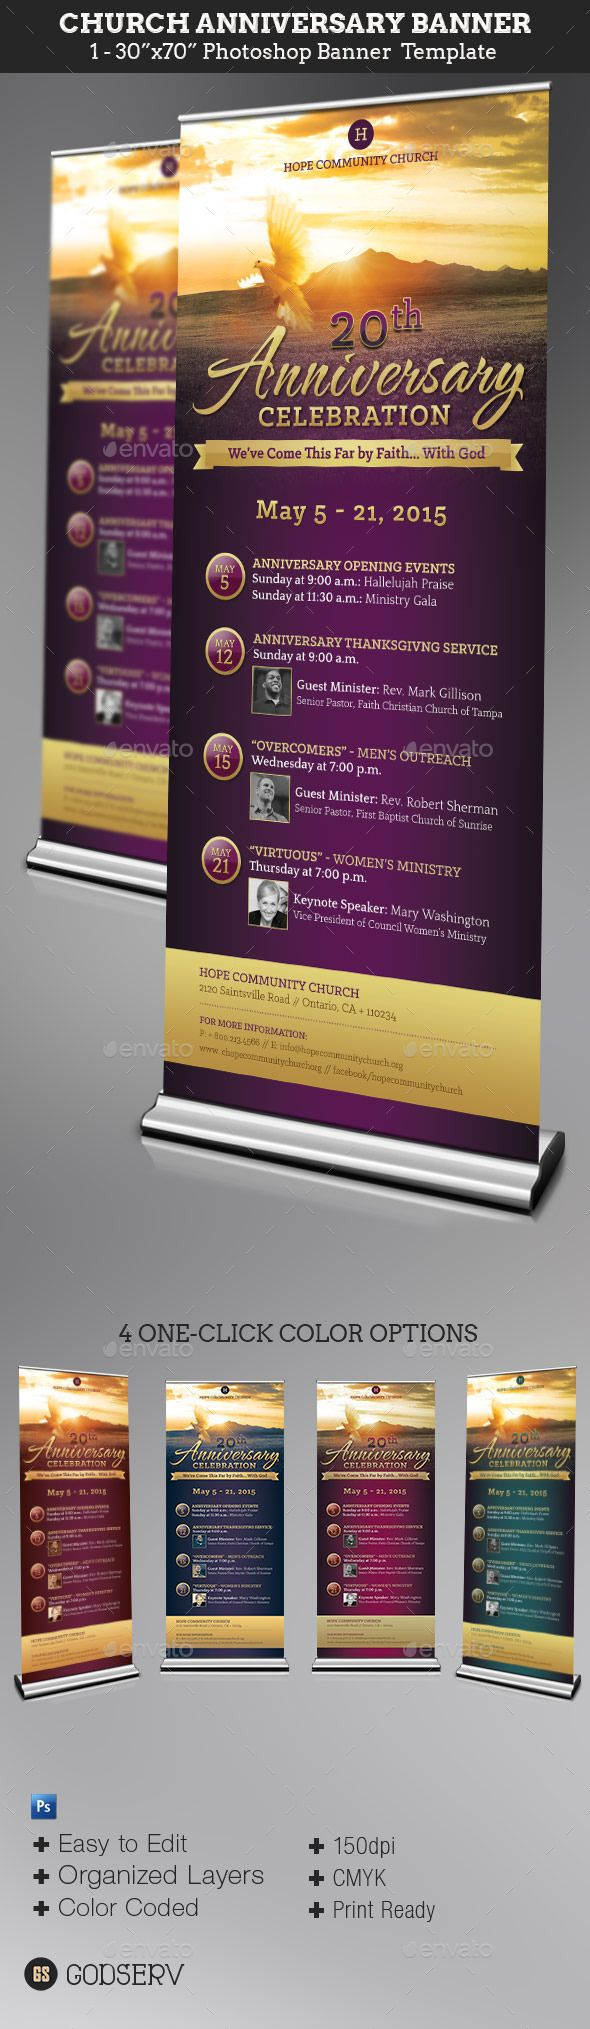 Church Anniversary Banner Template #design Download: http://graphicriver.net/item/church-anniversary-banner-template/11259043?ref=ksioks